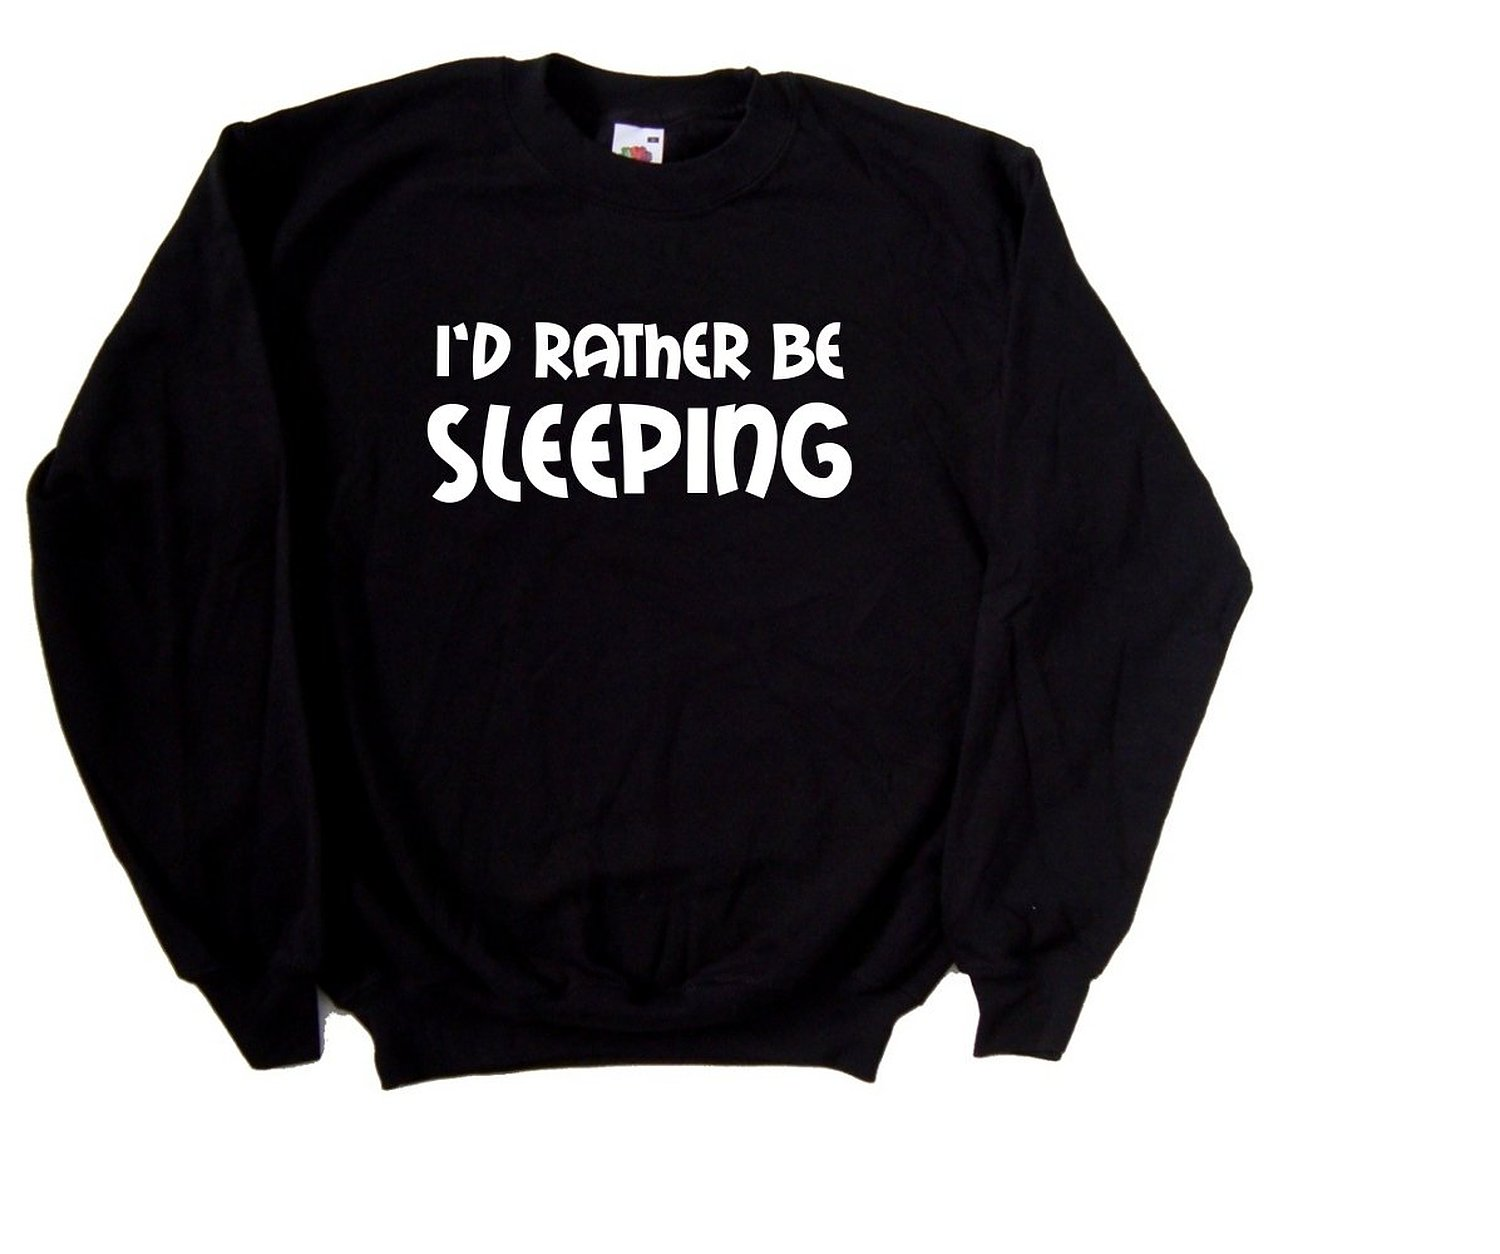 Amazon.com: I'd Rather Be Sleeping Black Sweatshirt: Clothing